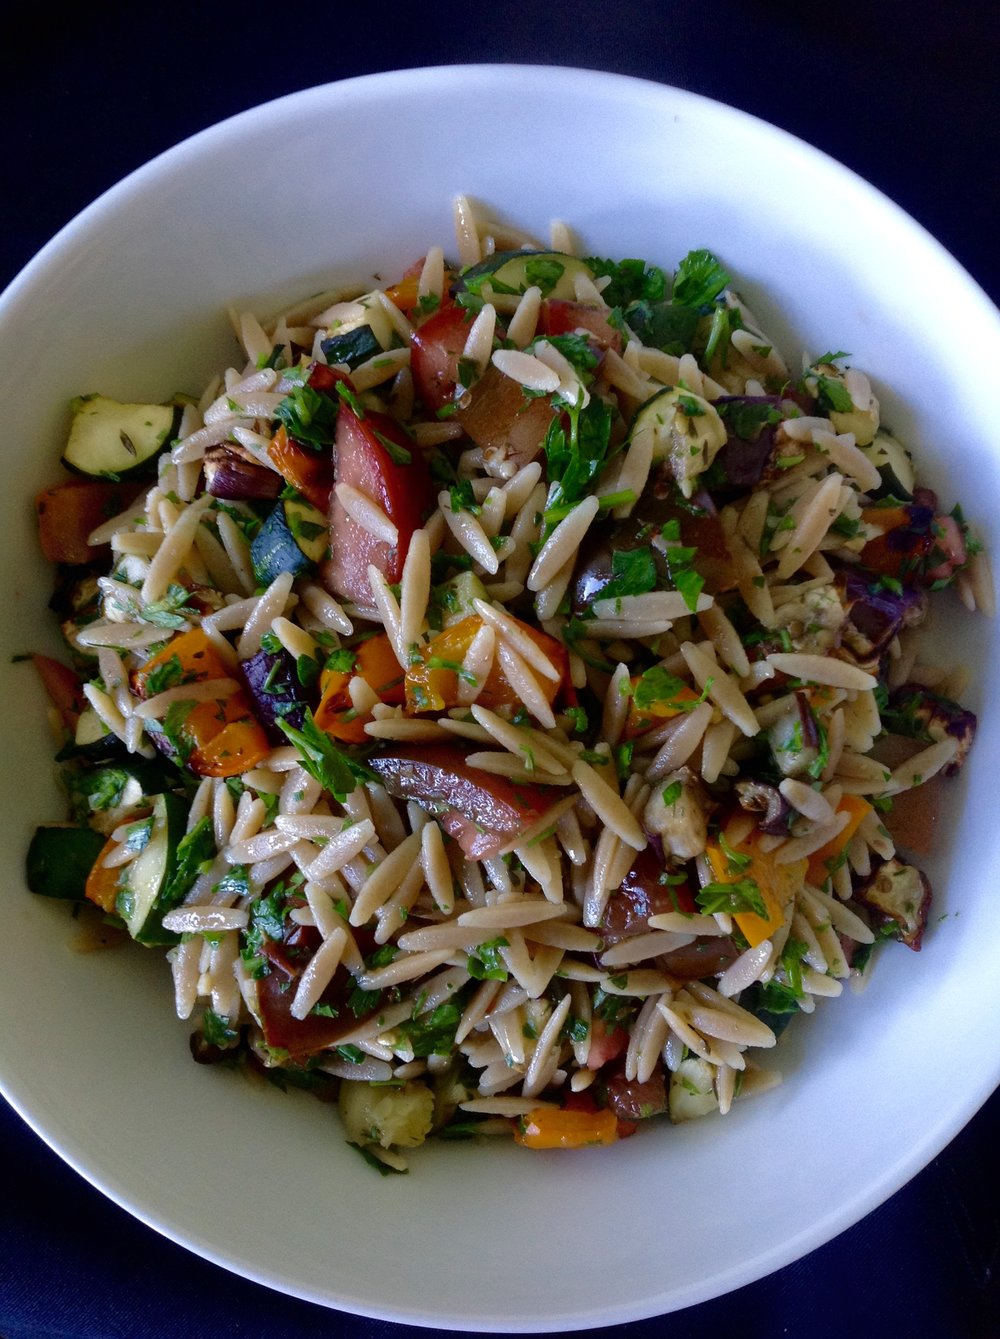 Whole Wheat Orzo Ratatouille - Healthy, Whole Grain, Pasta Salad, Oil-Free, Plant-Based, Vegan, Italian Recipe with Eggplant, Zucchini, Bell Pepper, Tomatoes